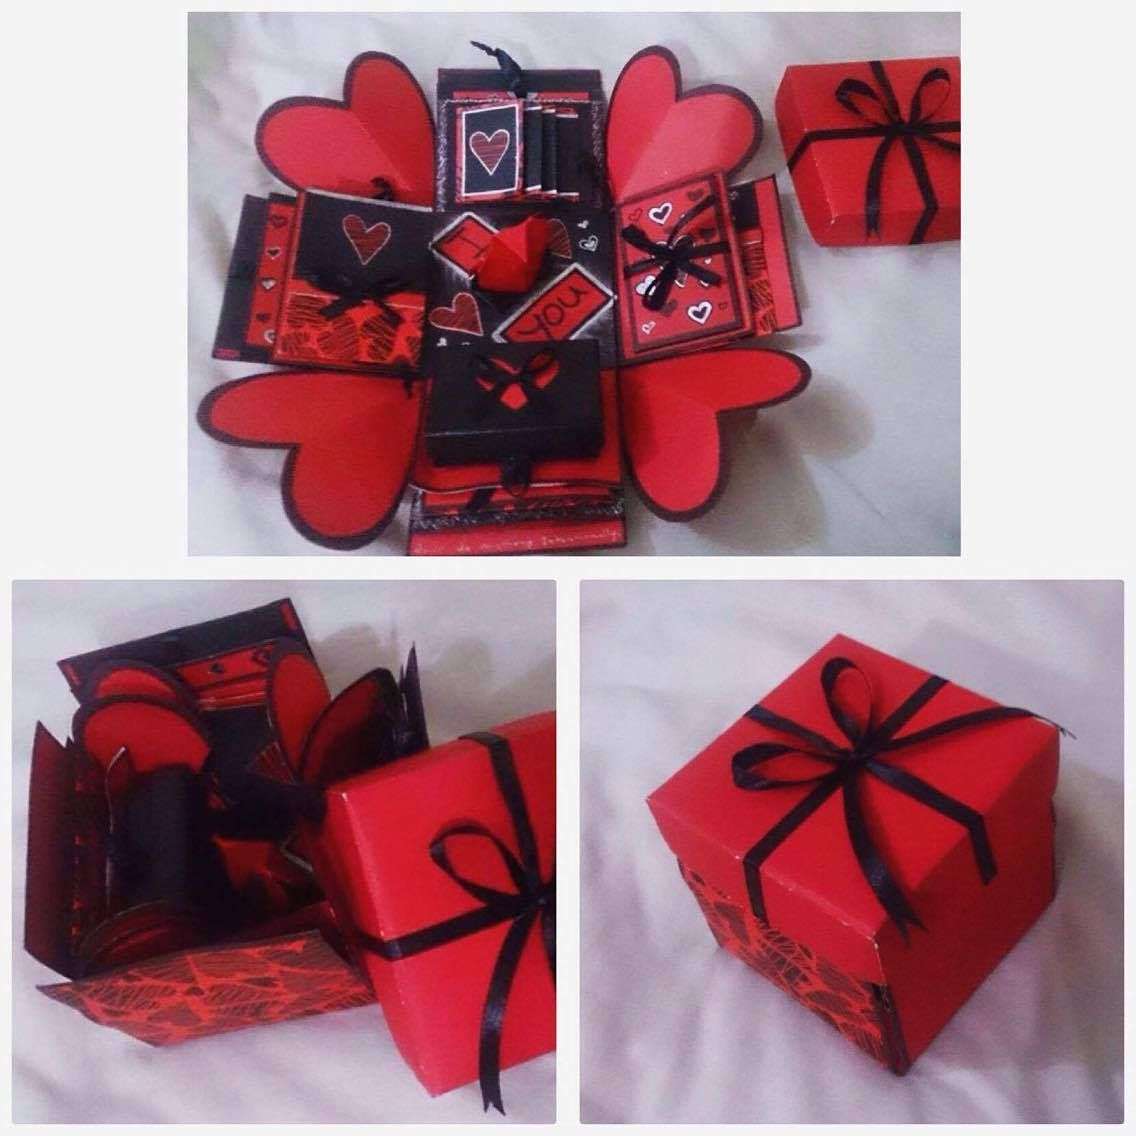 How to make scrapbook for my boyfriend - This Is A Explosion Box I Made For My Boyfriend On Valentines Day I Just